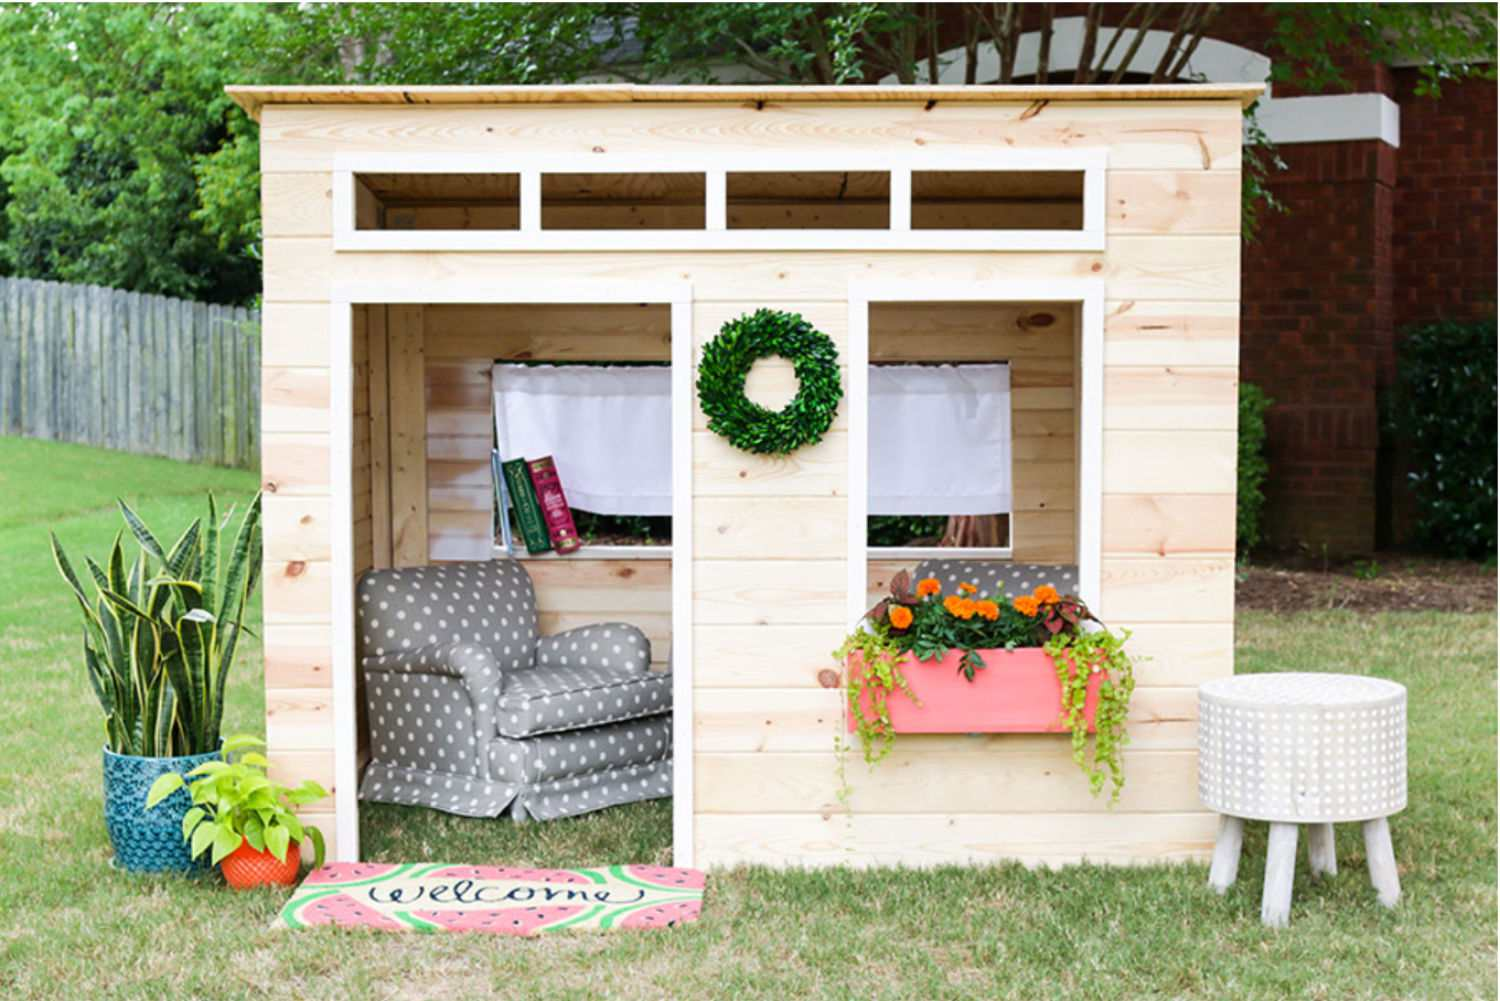 16 Free Backyard Playhouse Plans for Kids Project Wood Pallet Playhouse Plans on wood pallet planter plans, wood pallet desk plans, wood pallet shelf plans, wood pallet garden plans, wood pallet bookshelf plans, wood pallet chicken co-op plans, wood pallet greenhouse plans, wood pallet garage, wood pallet carport plans, wood pallet swing plans, wood pallet treehouse plans, wood pallet table plans, wood pirate ship playhouse plans, wood pallet building, pallet house design plans, wood pallet gazebo plans, shed made from pallets plans, wood pallet wine rack plans, wood pallet bench plans, wood pallet fence plans,